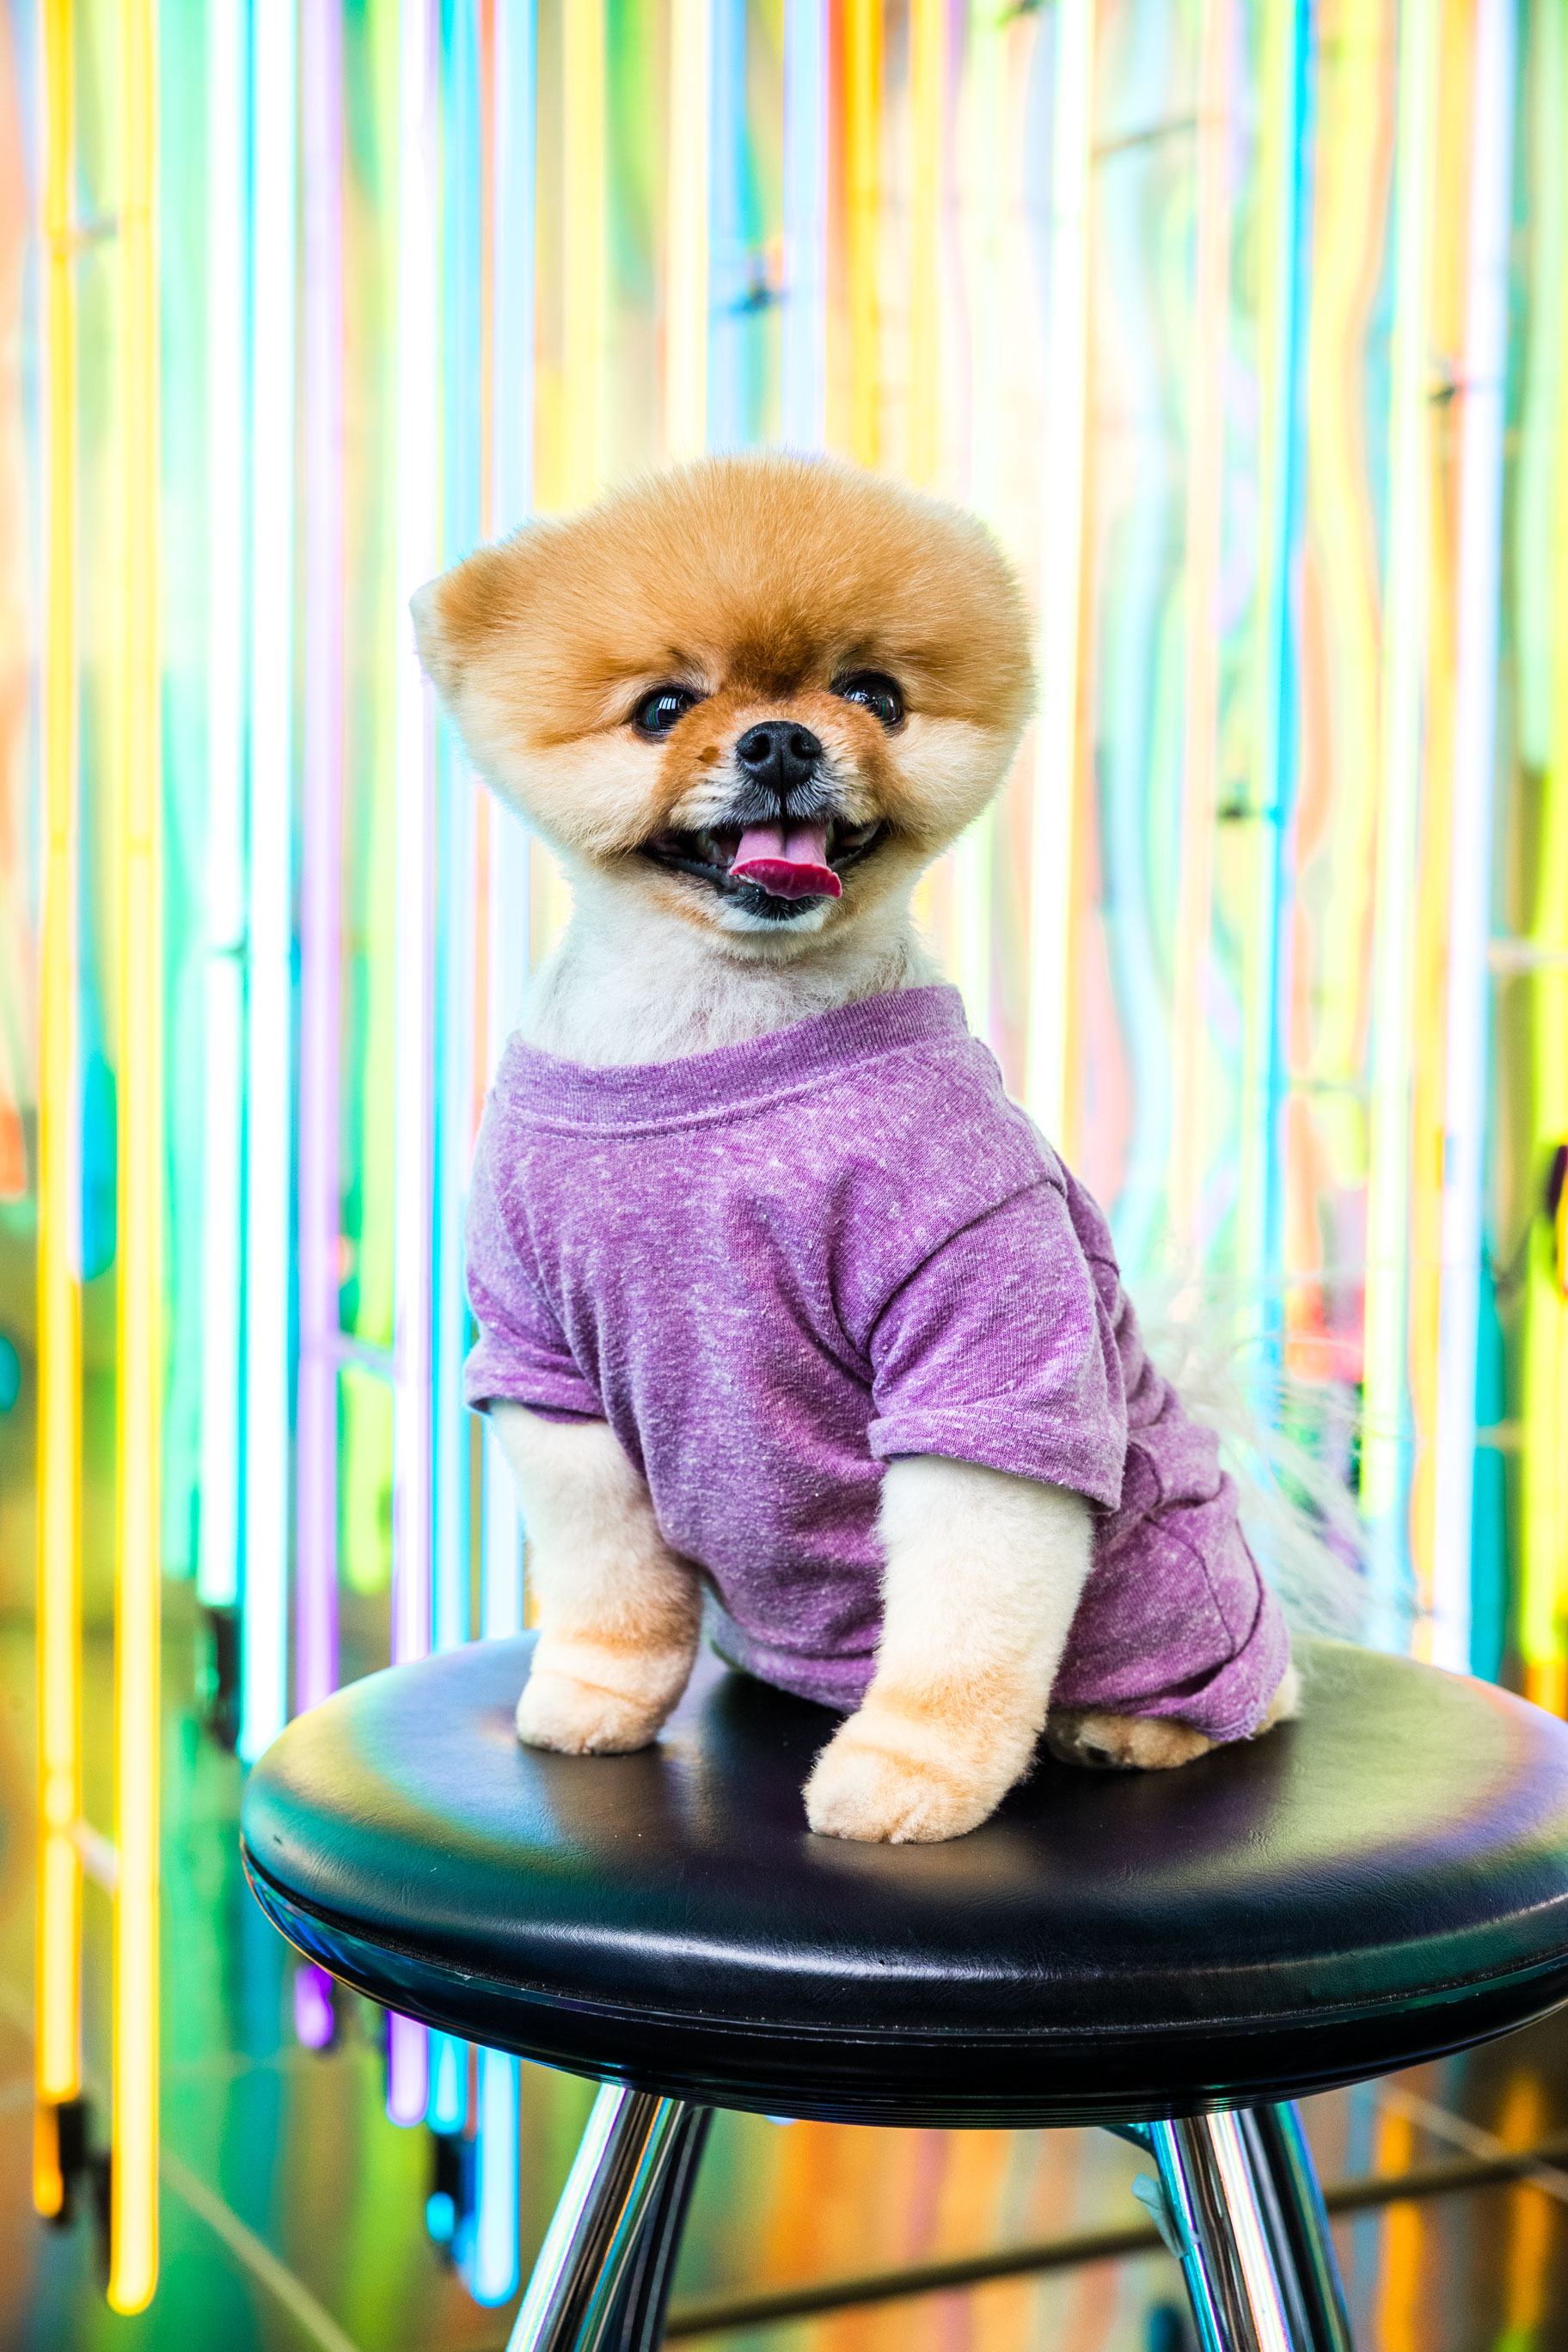 016_1111_Jiffpom_Photos_by_marcroyce_v1